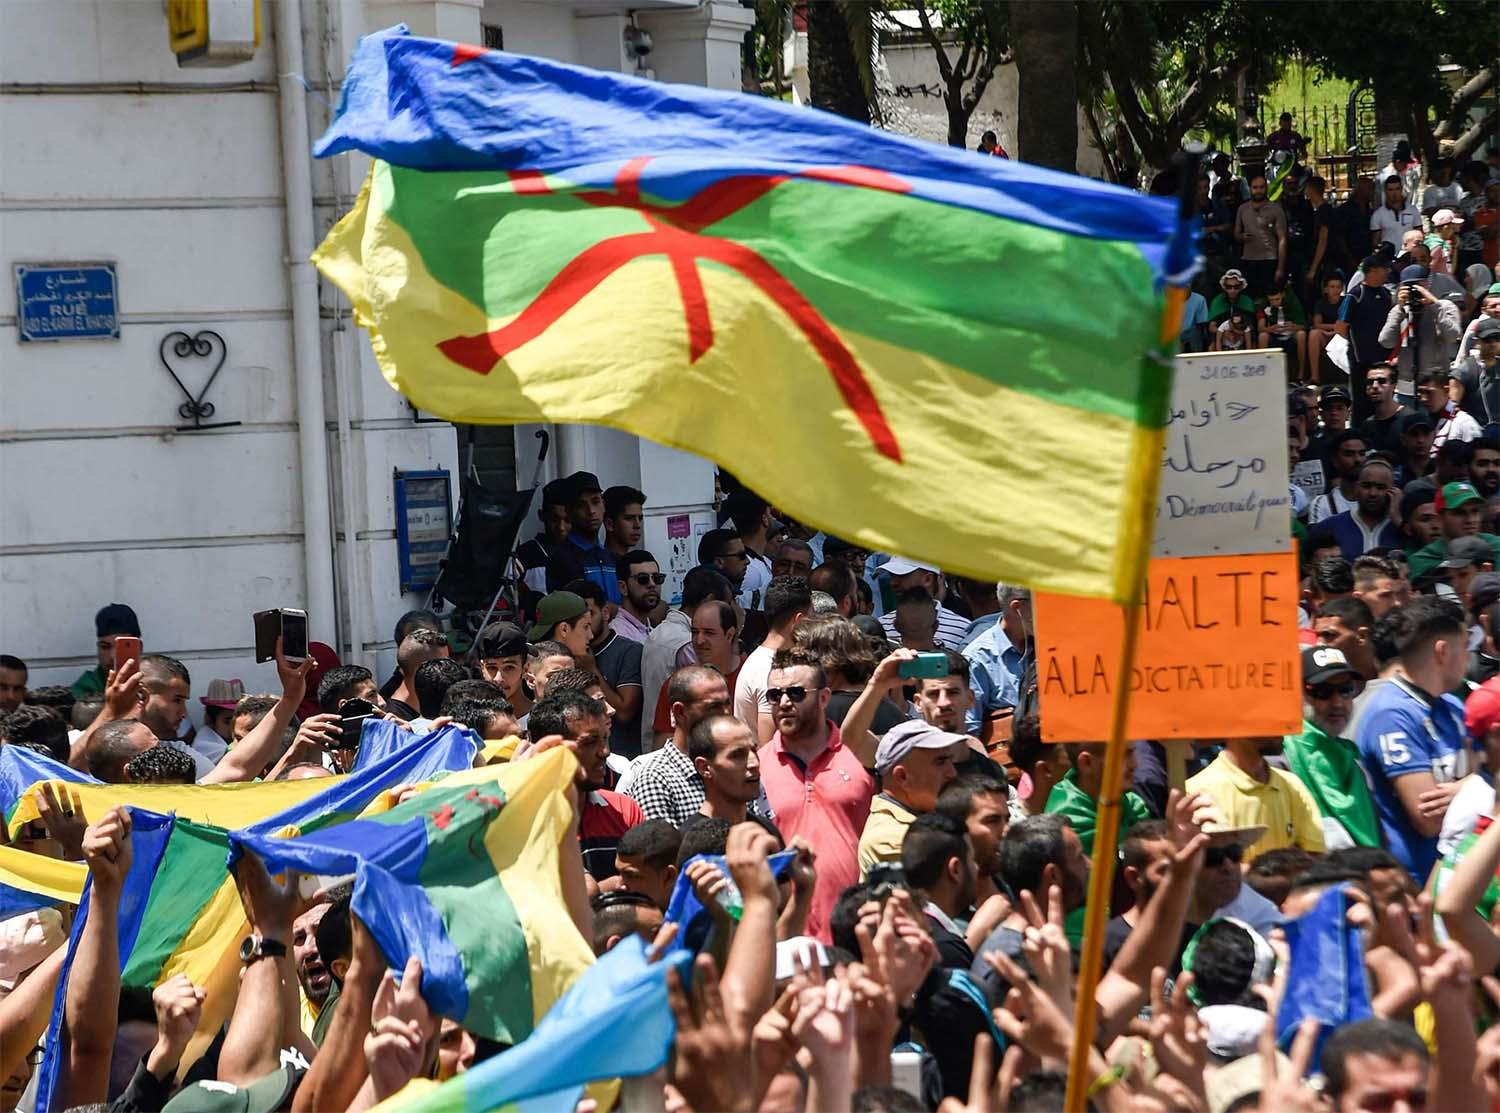 The protesters were arrested June 21 in Algiers in possession of Amazigh flags while taking part in an anti-government protest